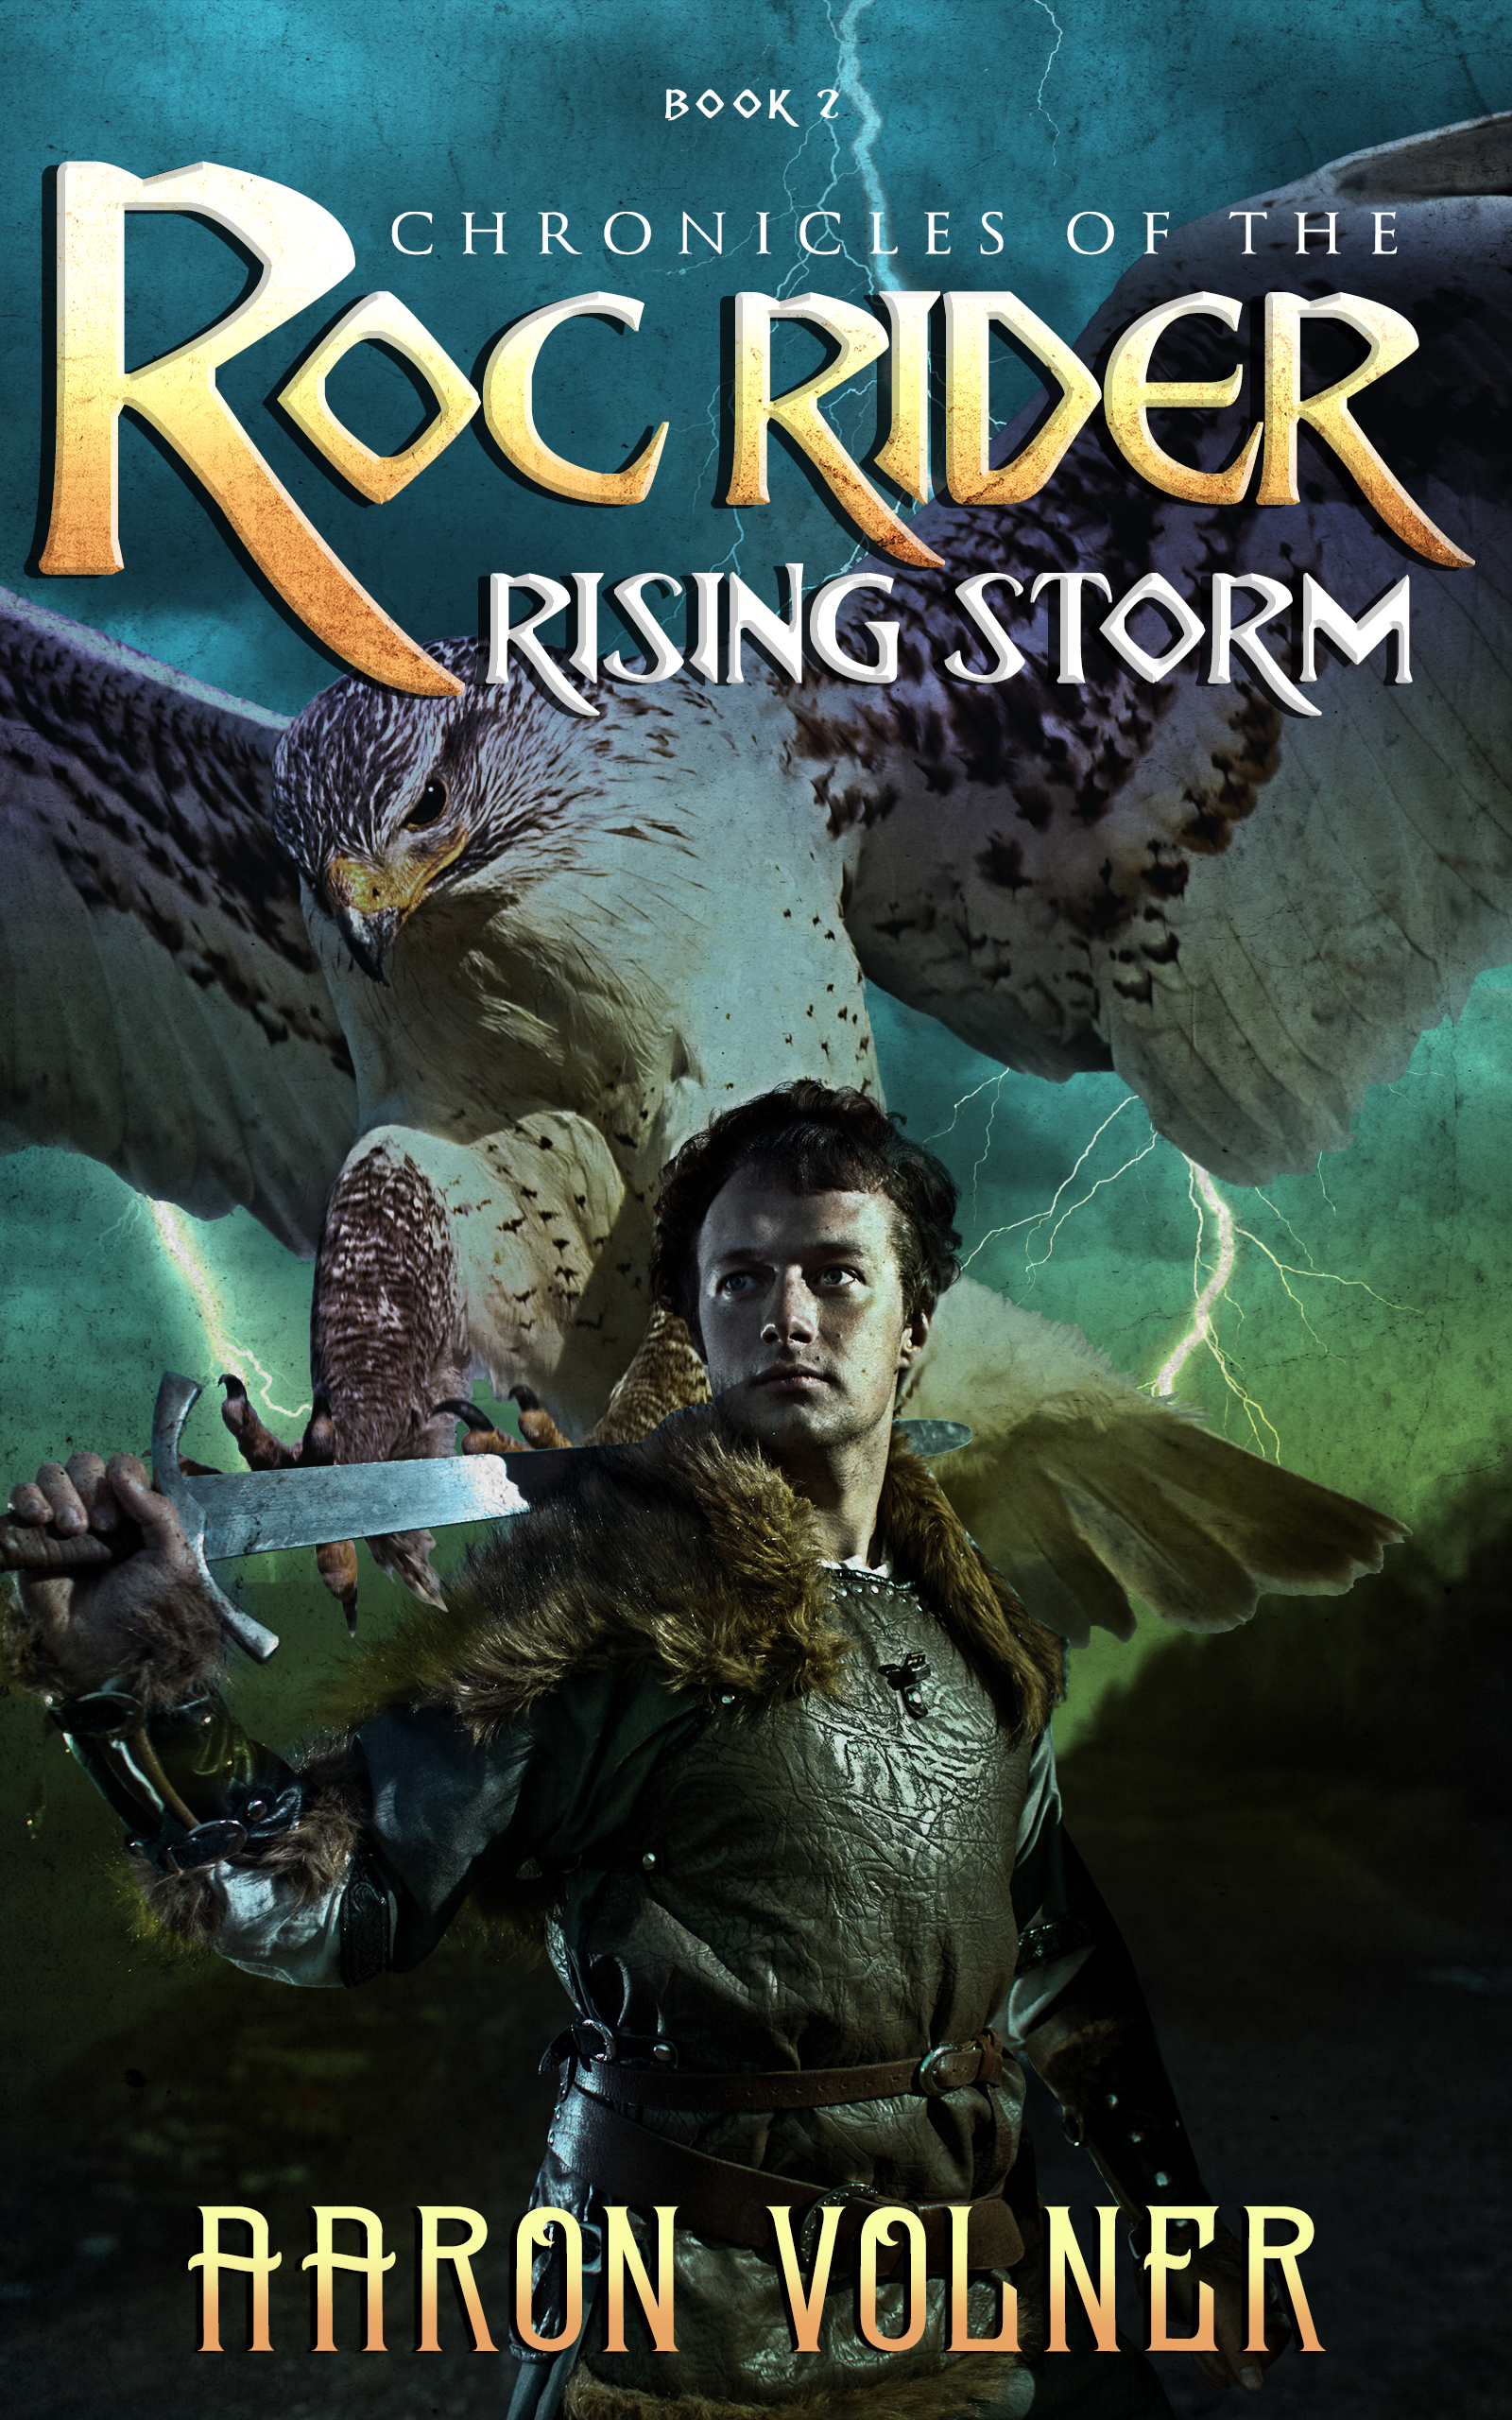 [PDF] [EPUB] Chronicles of the Roc Rider: Rising Storm Download by Aaron Volner